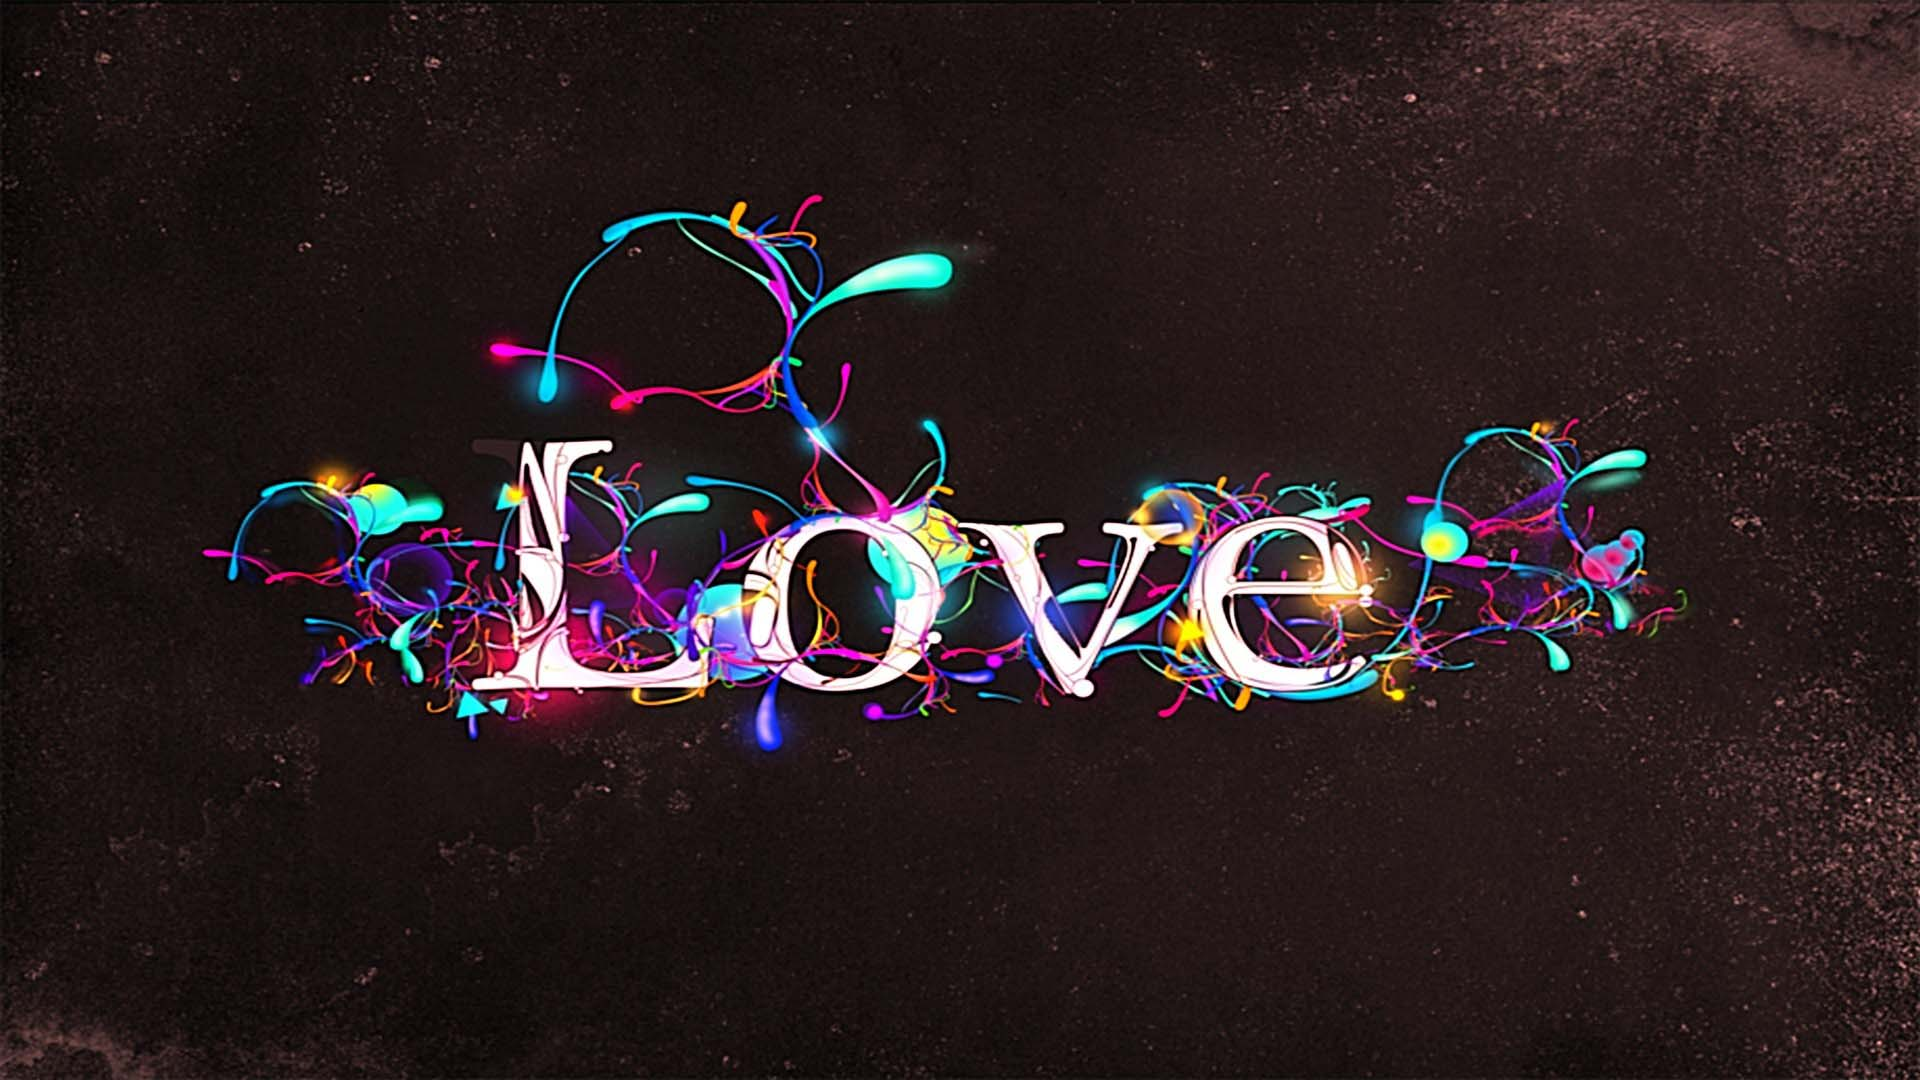 Pc wallpapers love wallpaper cave - Love wallpaper 2048x1152 ...